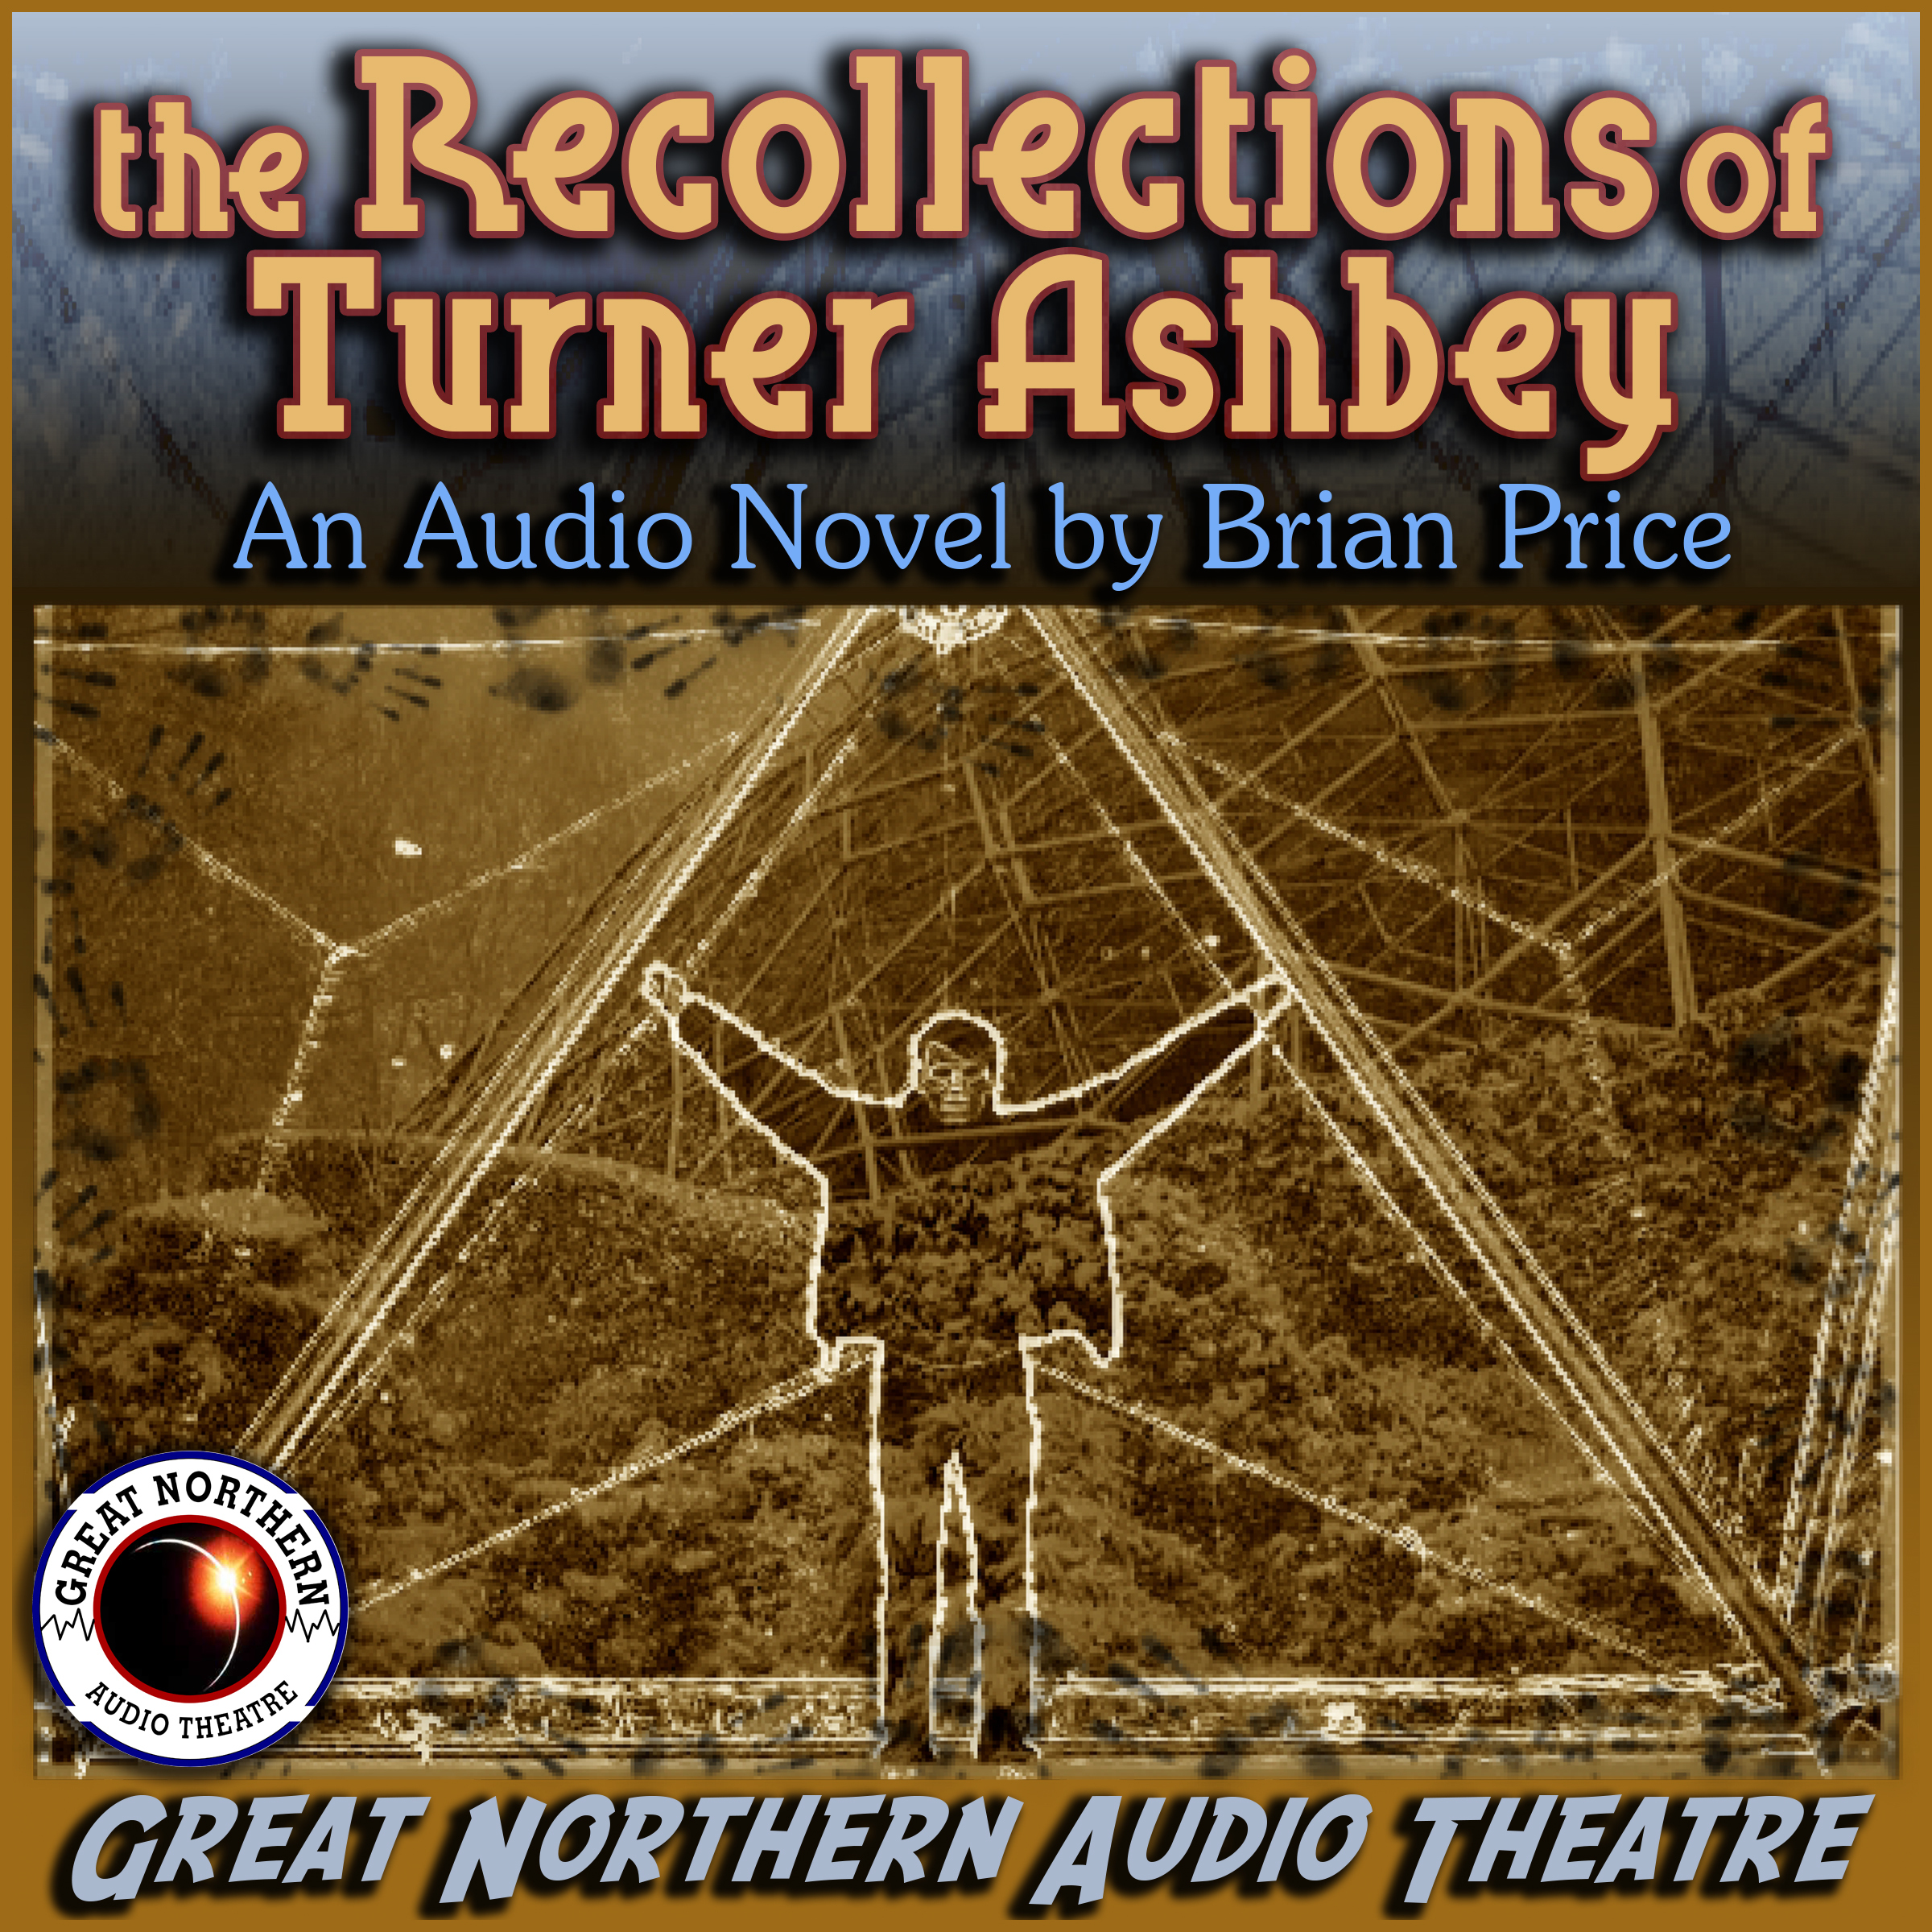 Printable The Recollections of Turner Ashbey: An Audio Novel Audiobook Cover Art